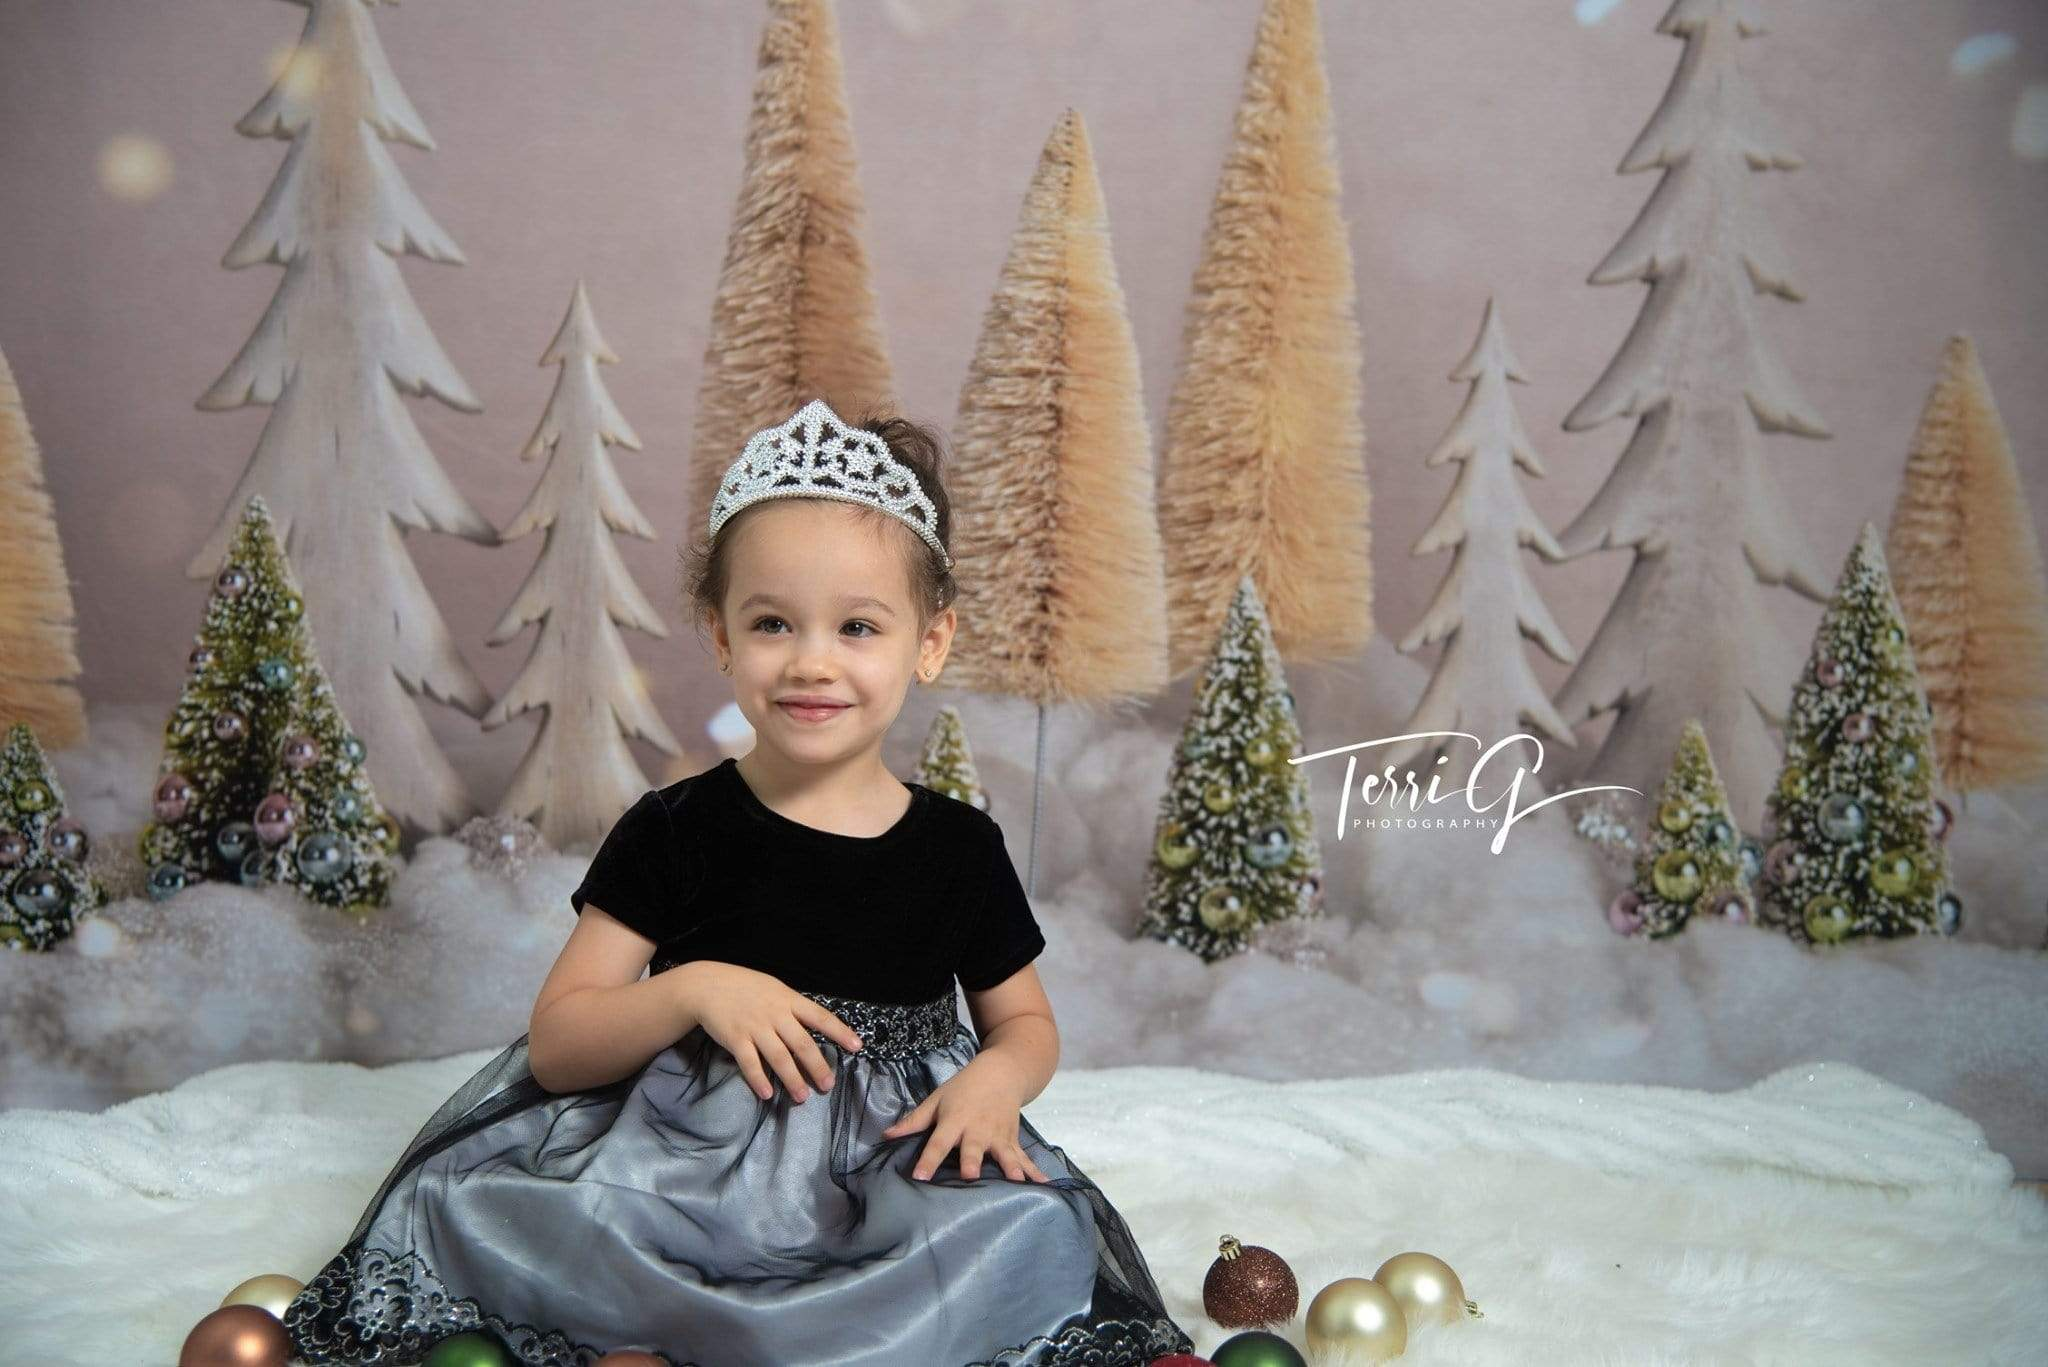 Load image into Gallery viewer, Katebackdrop:Kate Elegant Christmas Trees with Glitter Backdrop for Photography Designed By Mandy Ringe Photography